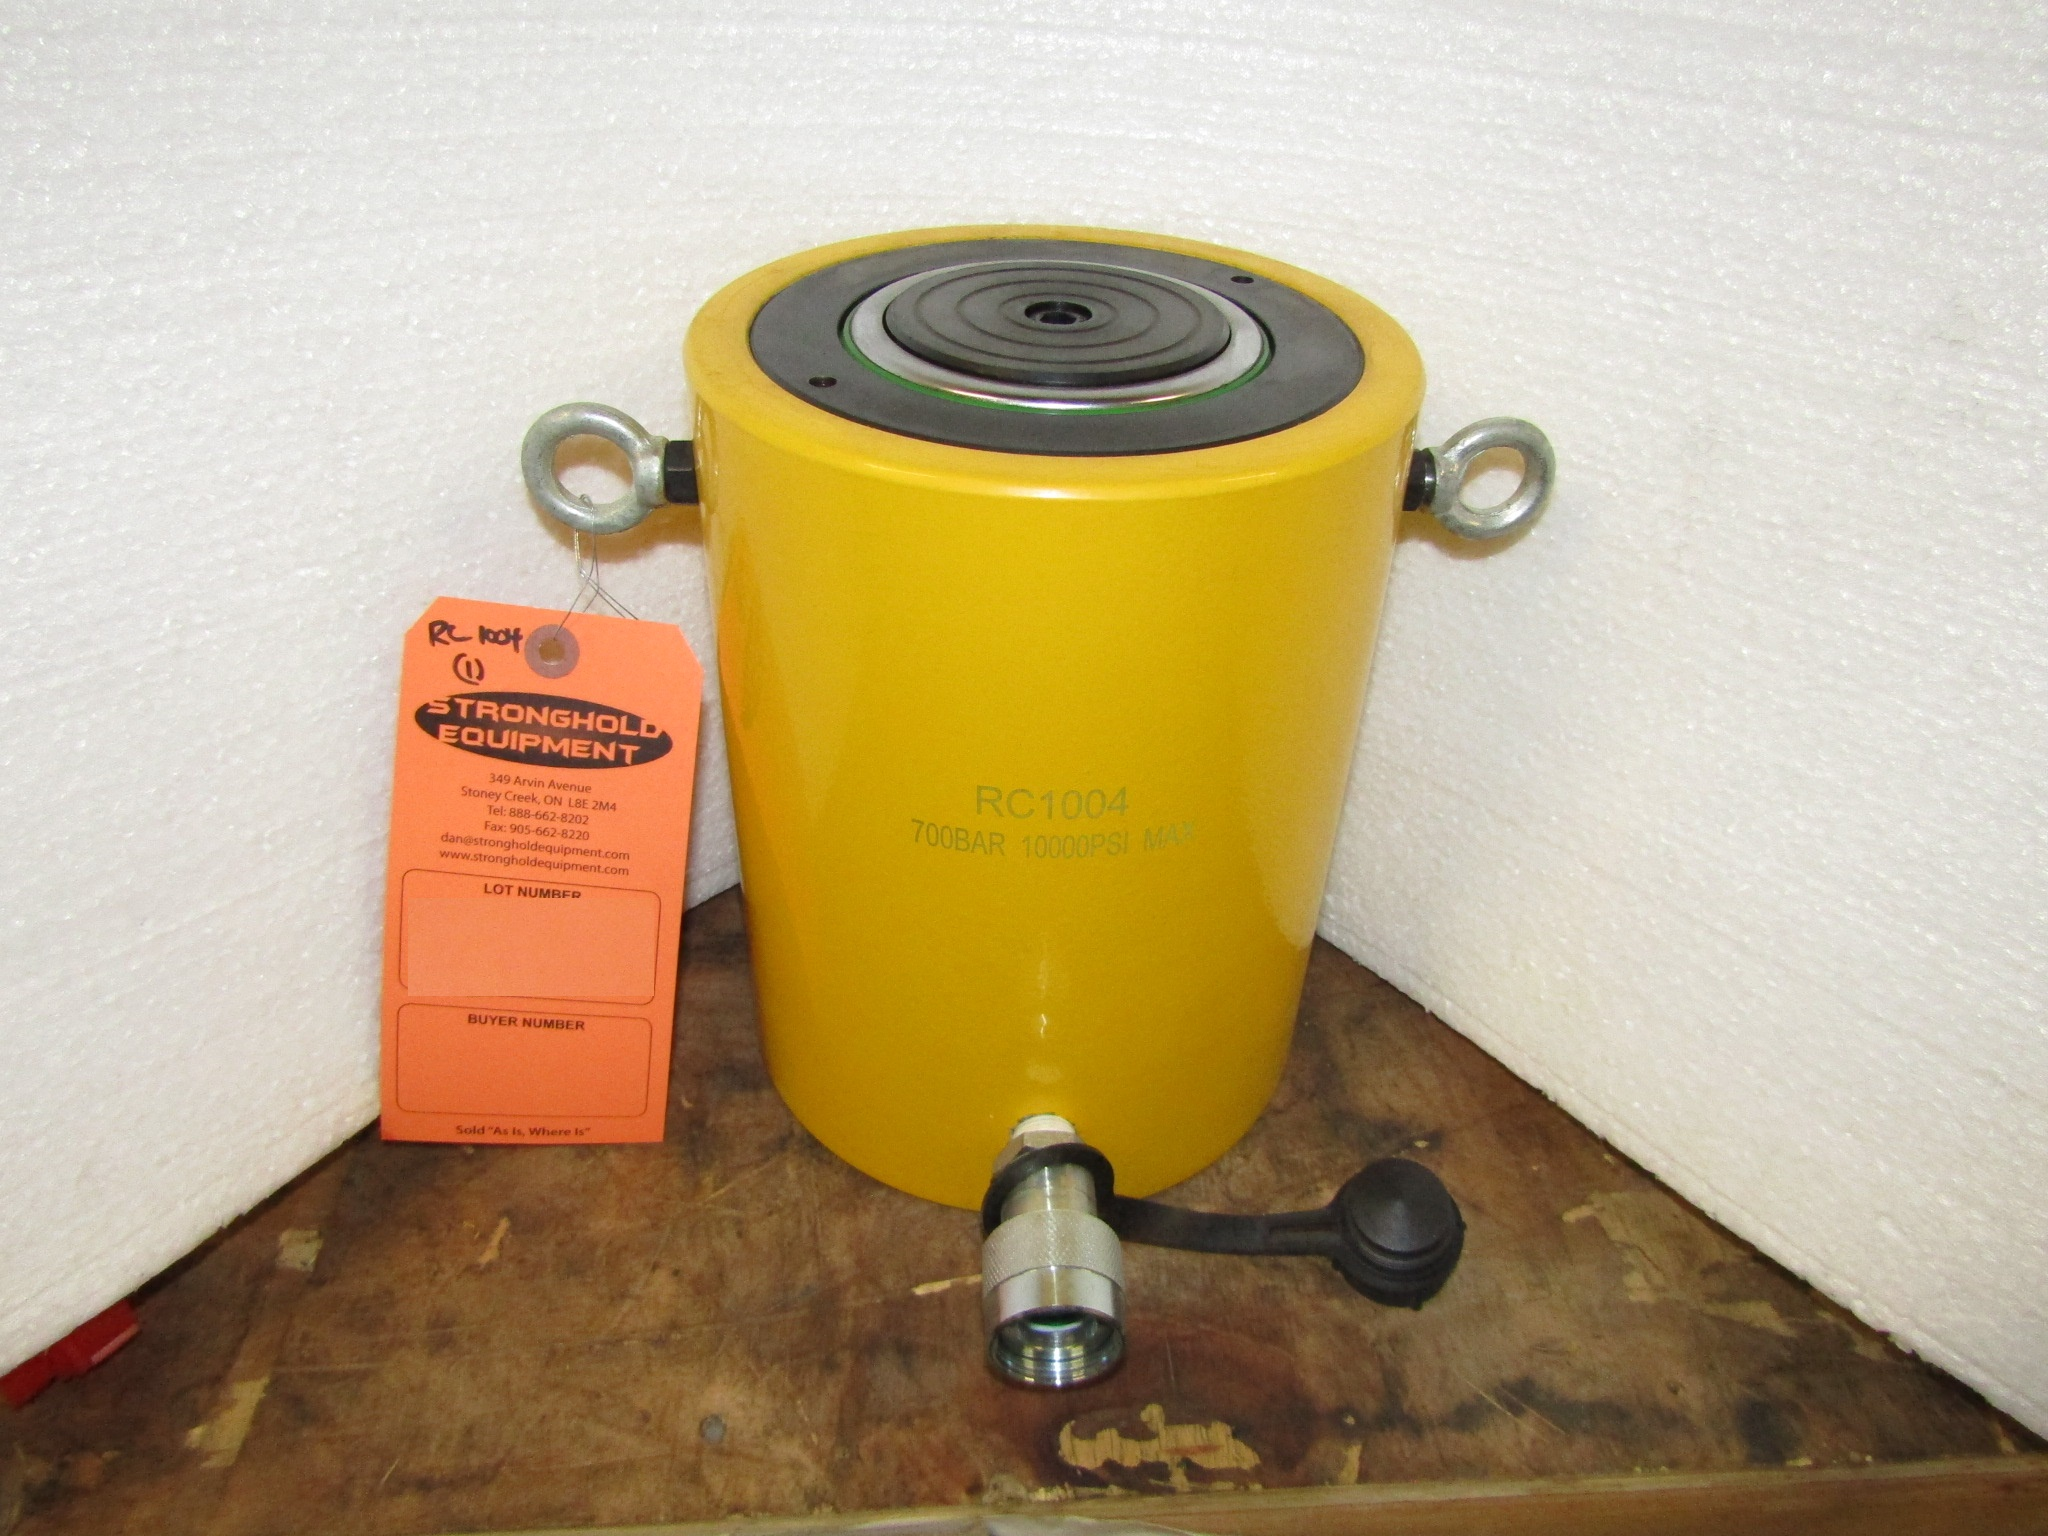 """Lot 46 - RC-1004 MINT - 100 ton Hydraulic Jack with 4"""" stroke type cylinder"""